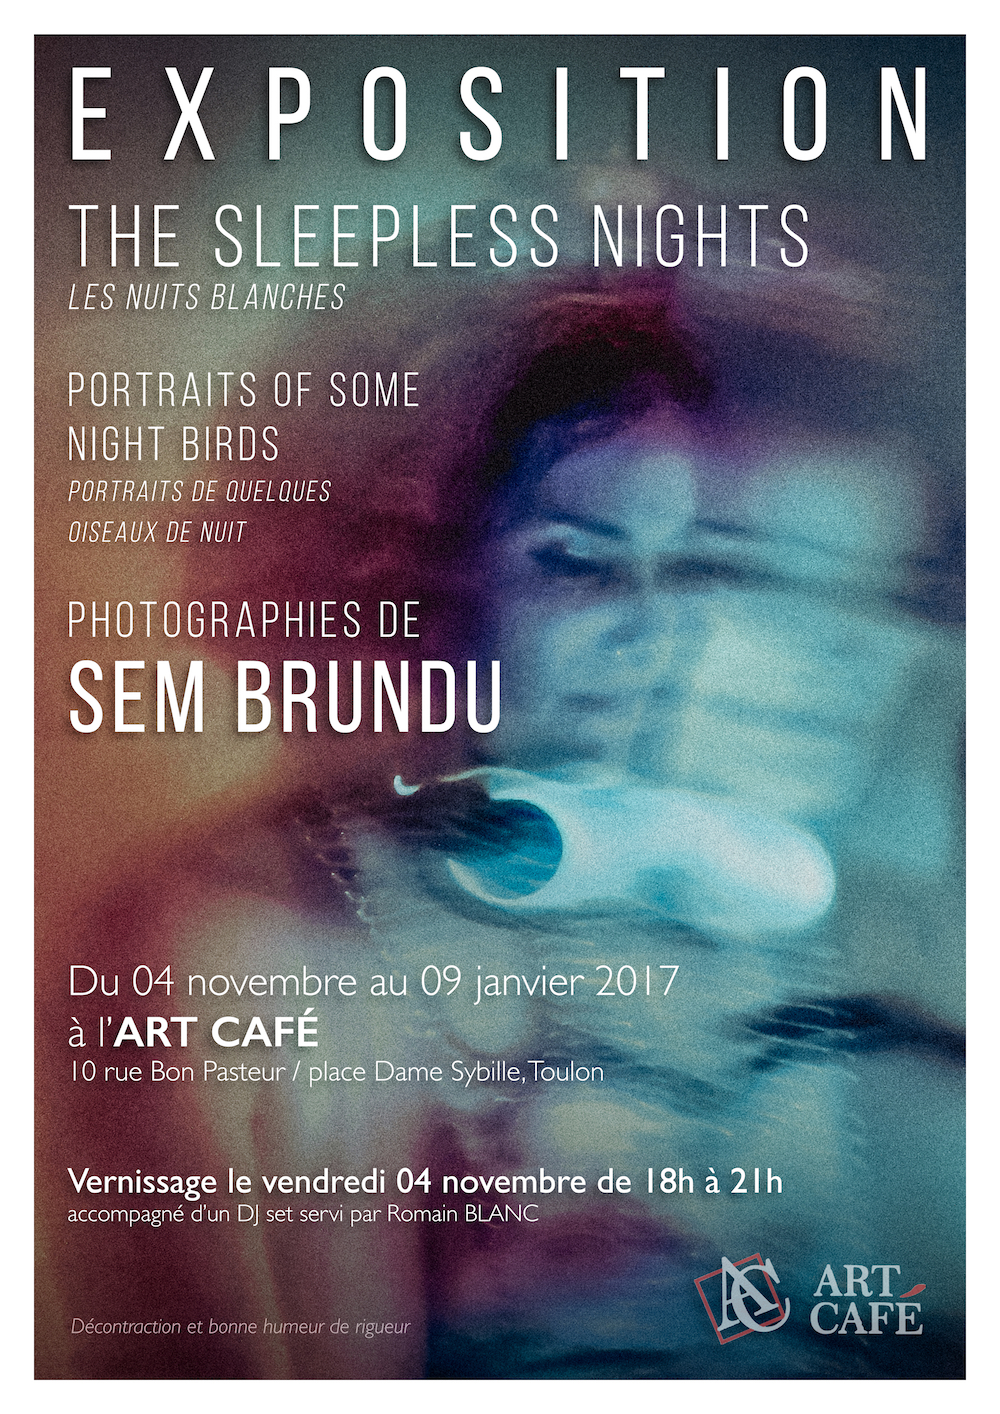 L'exposition The Sleepless Nights du photographe Sem Brundu à voir jusqu'au 9 janvier 2017 à l'Art Café, Toulon